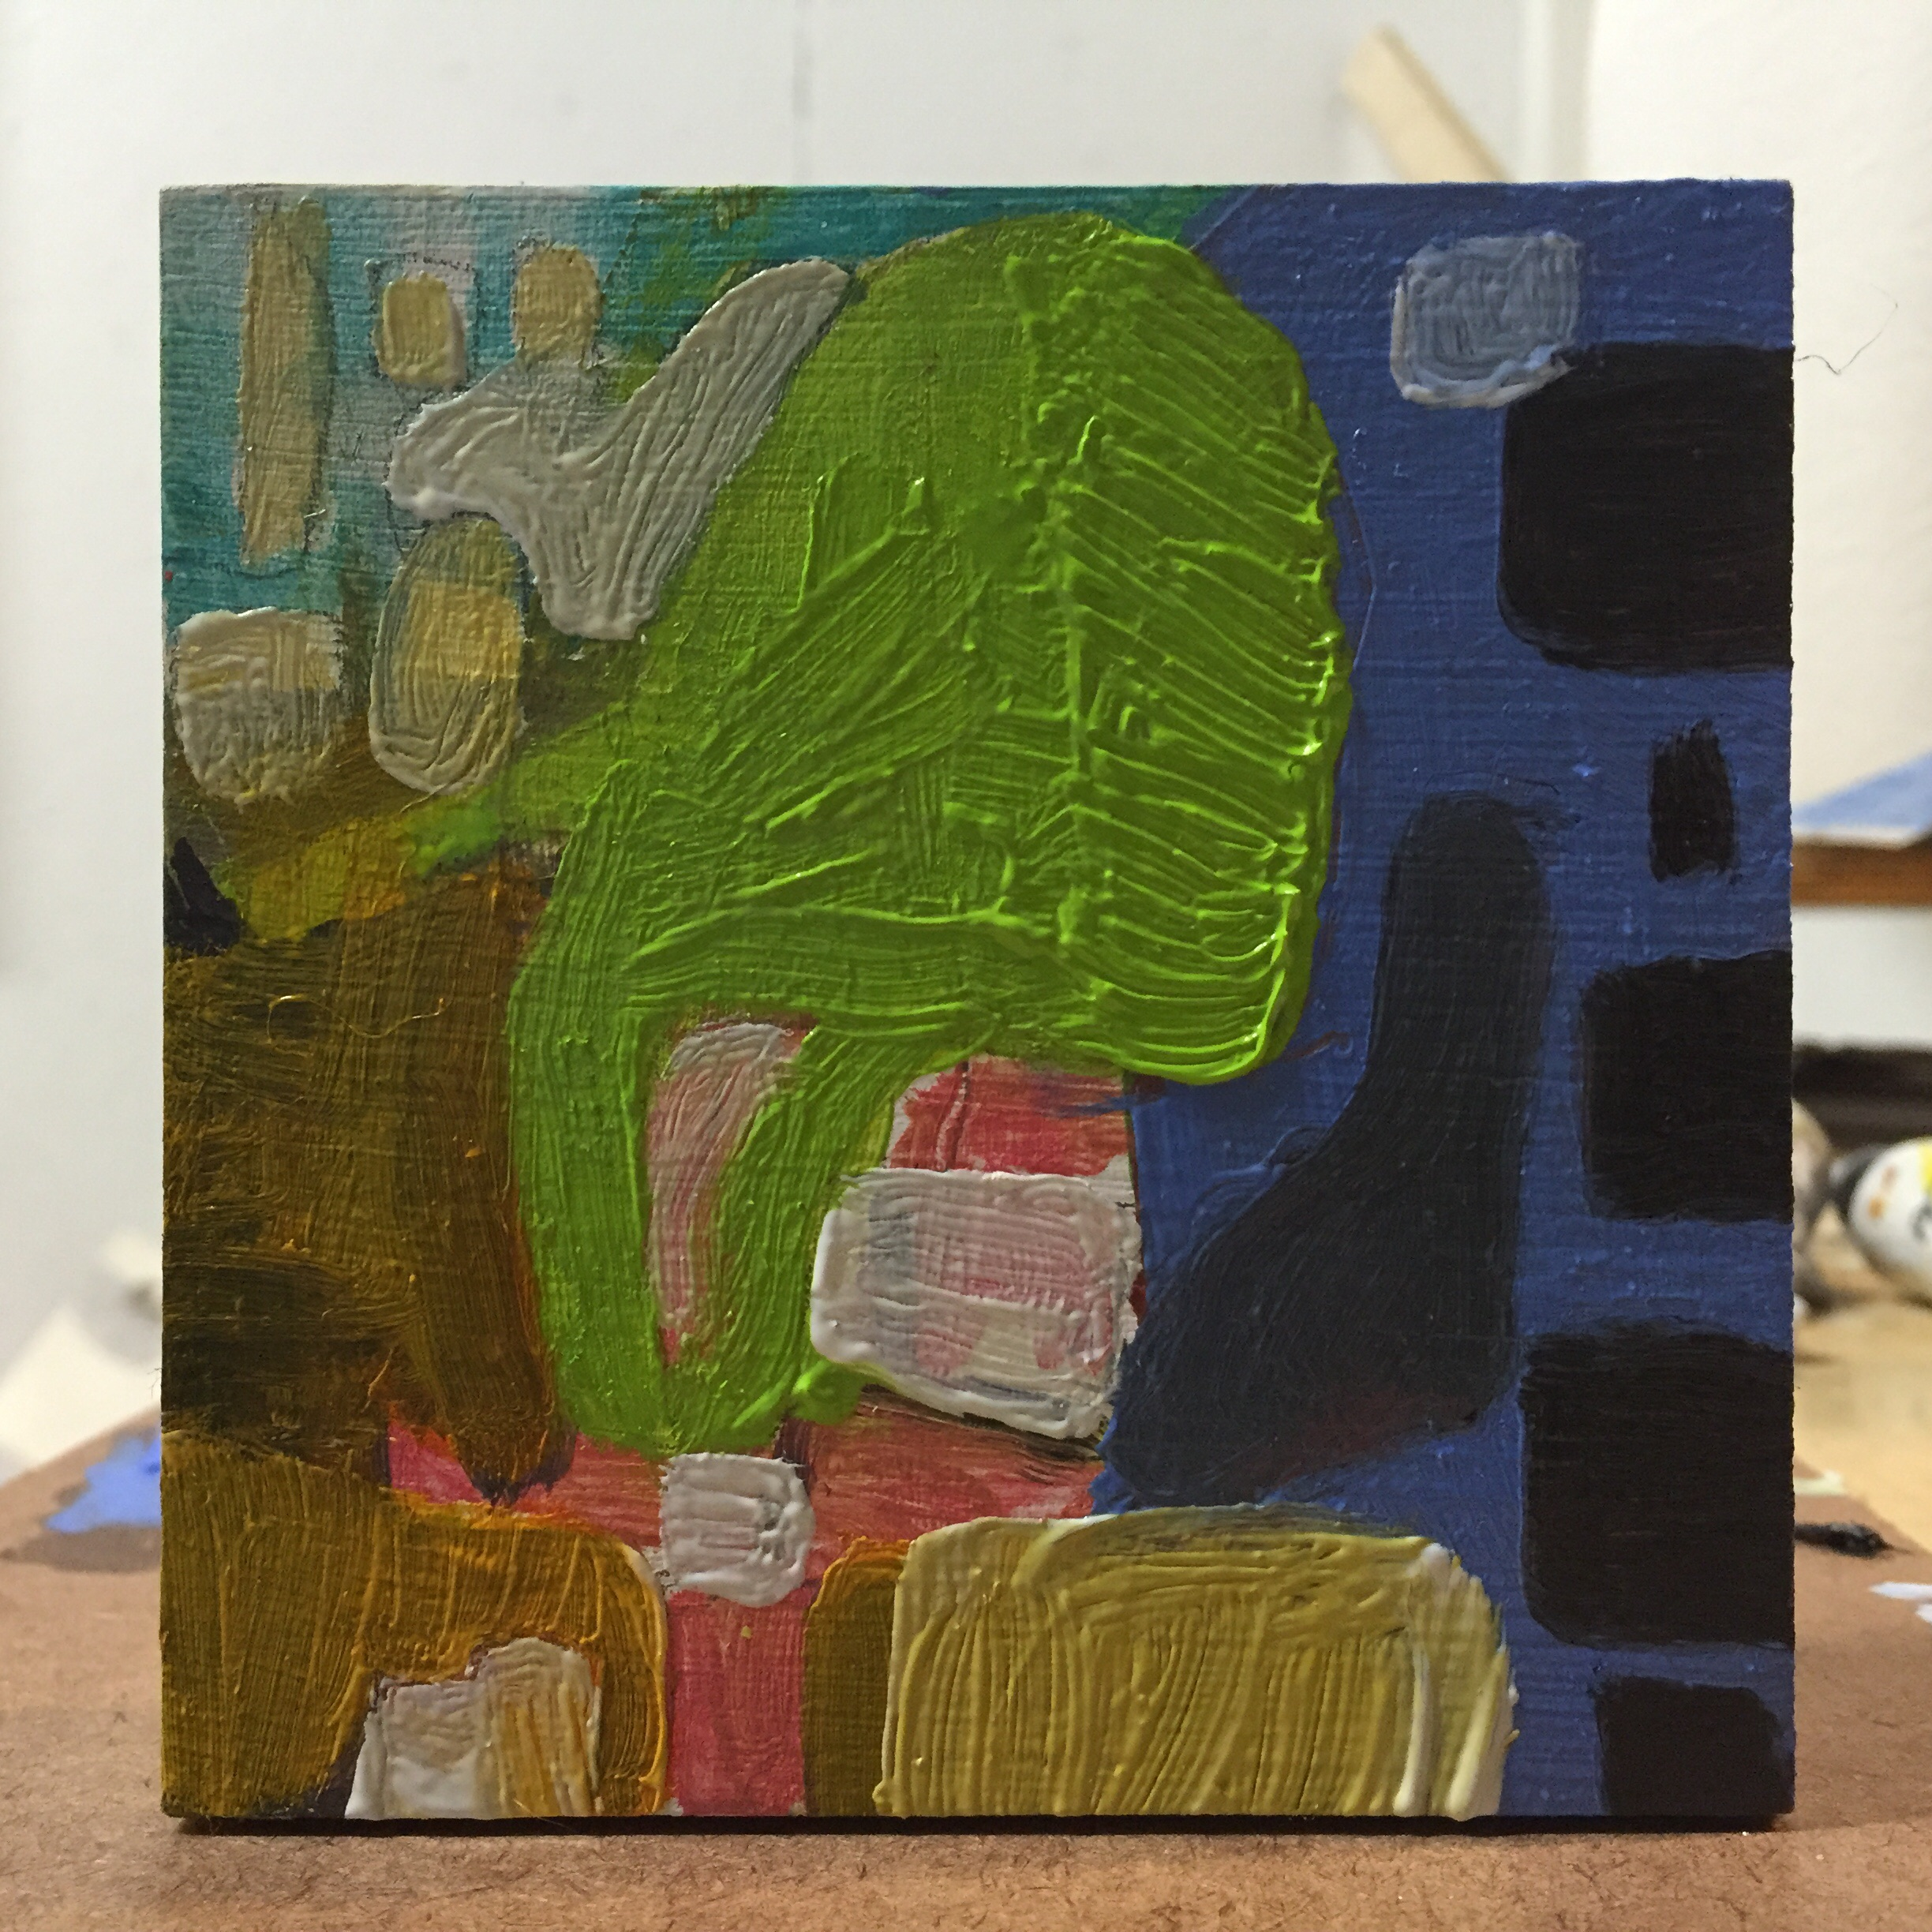 1 of 26 four inch paintings